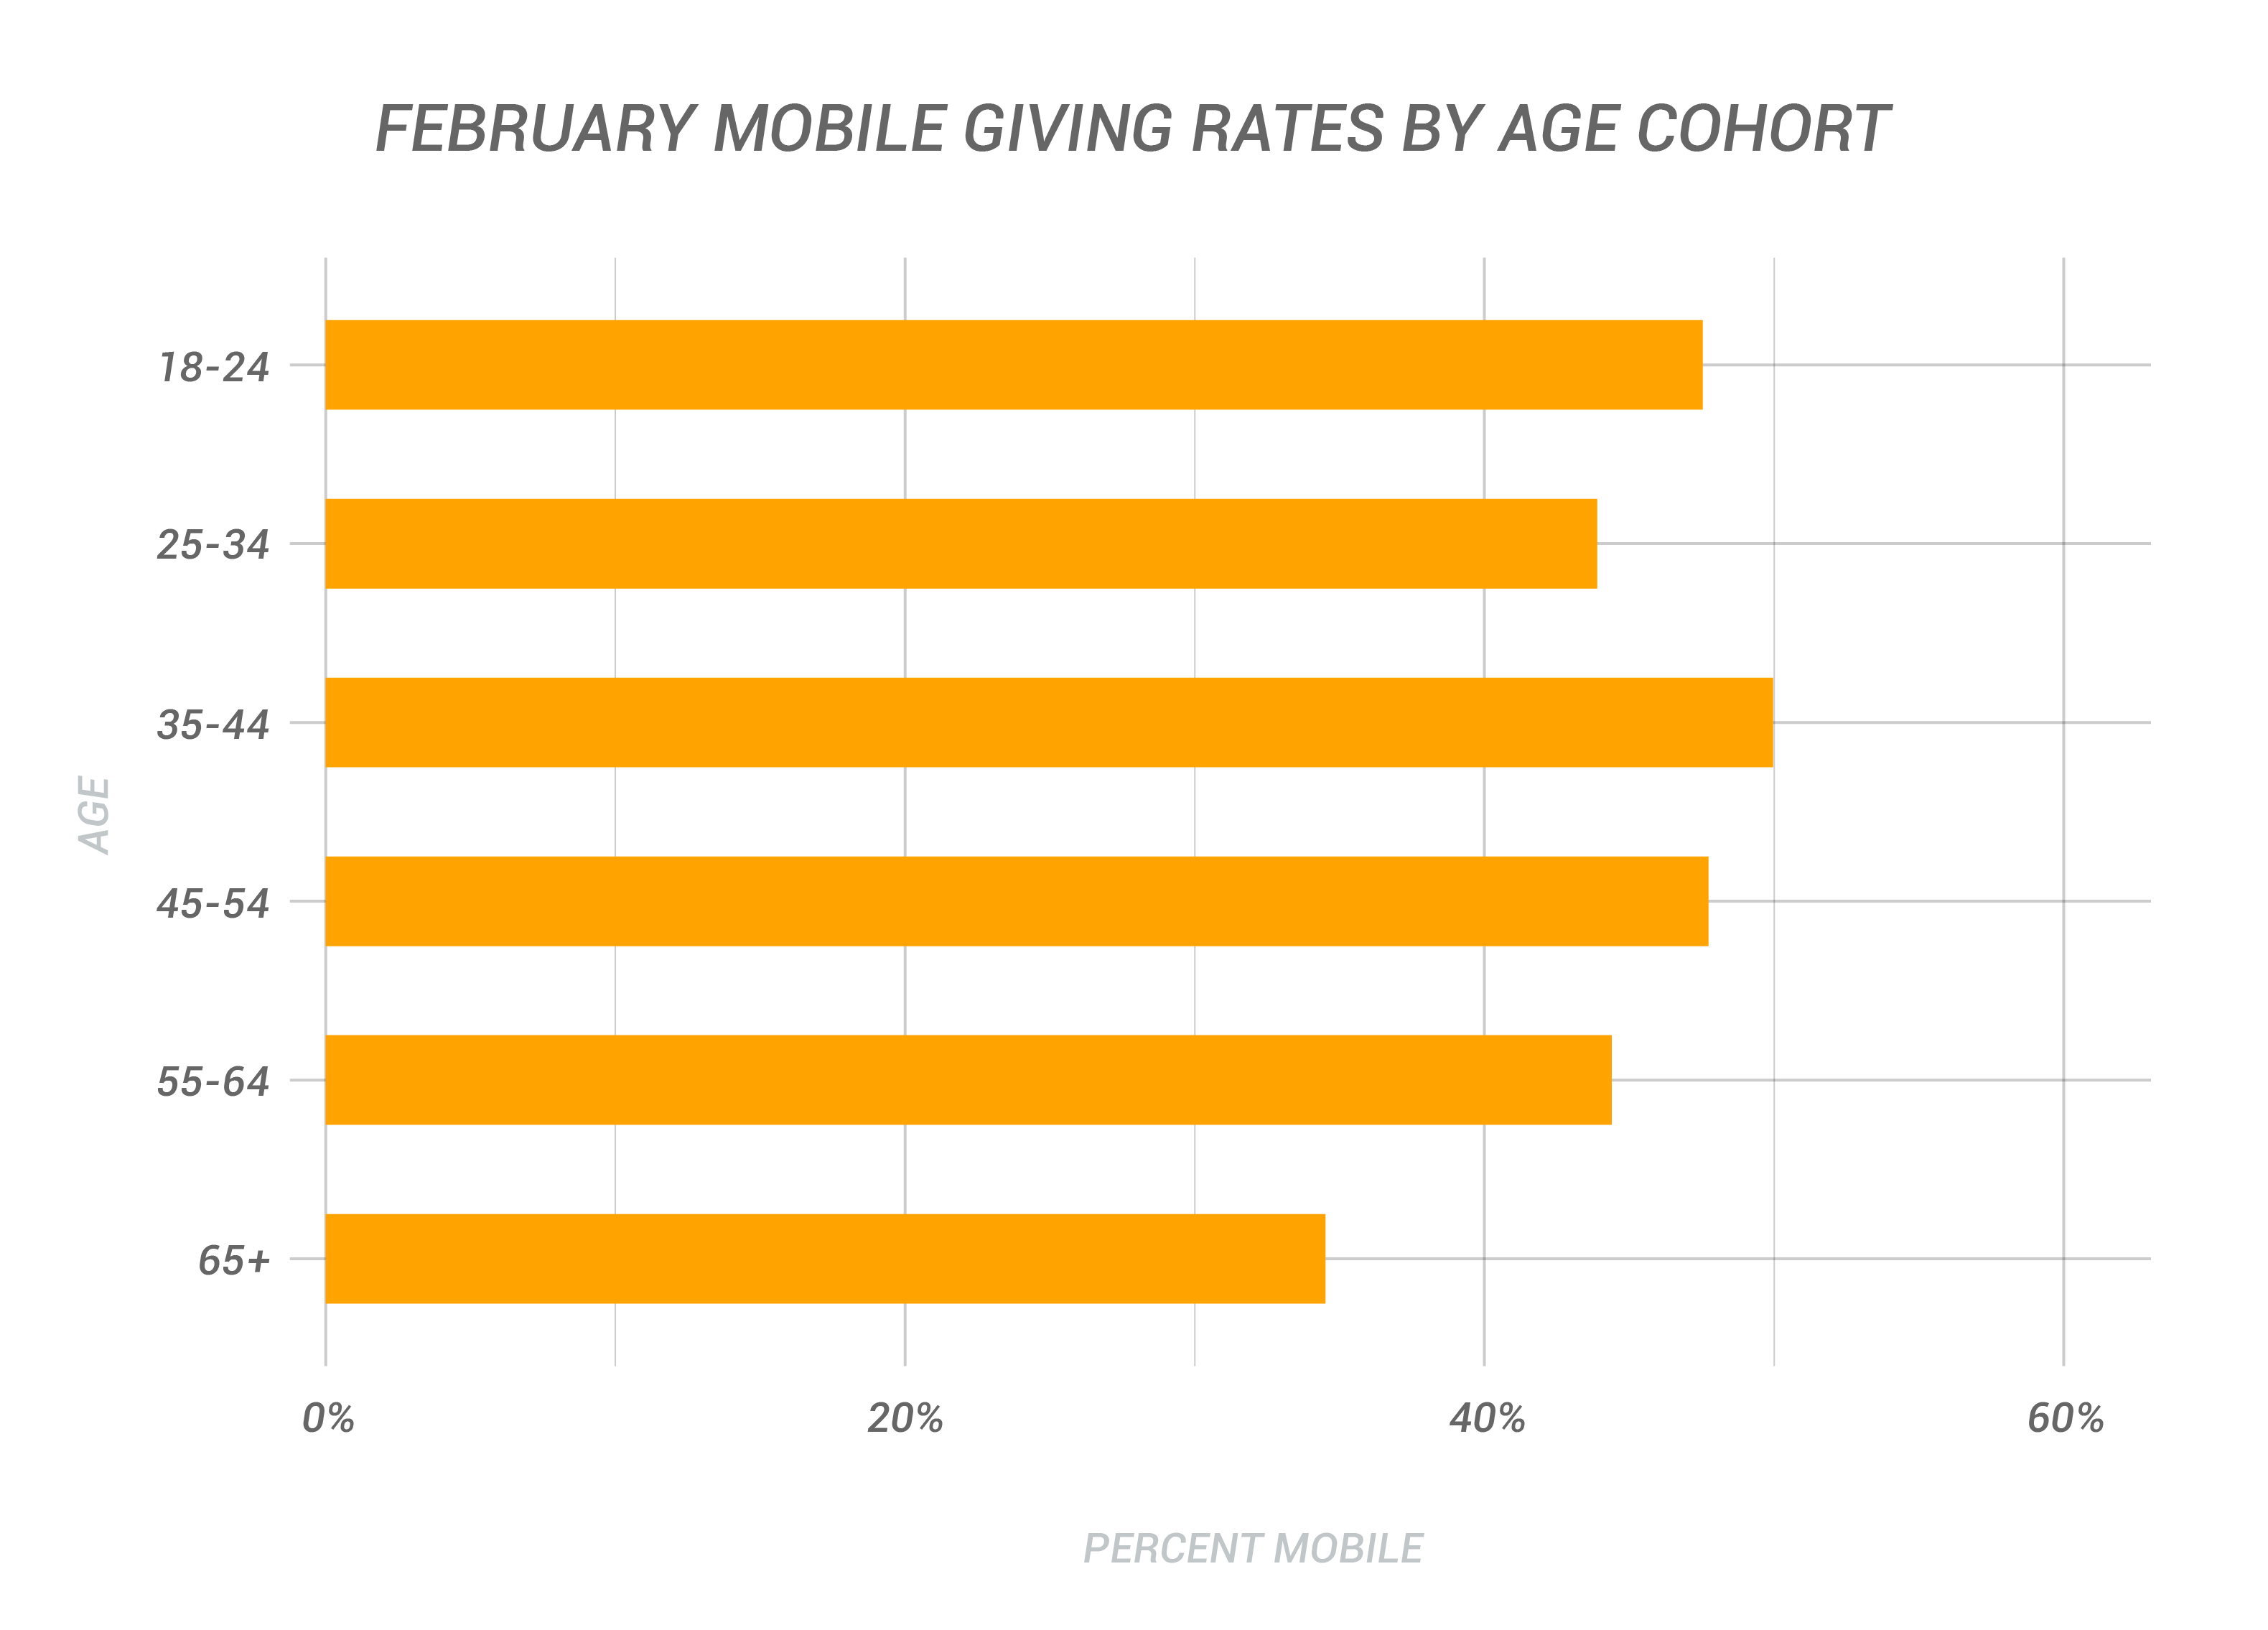 February Mobile Giving Rates By Age Cohort